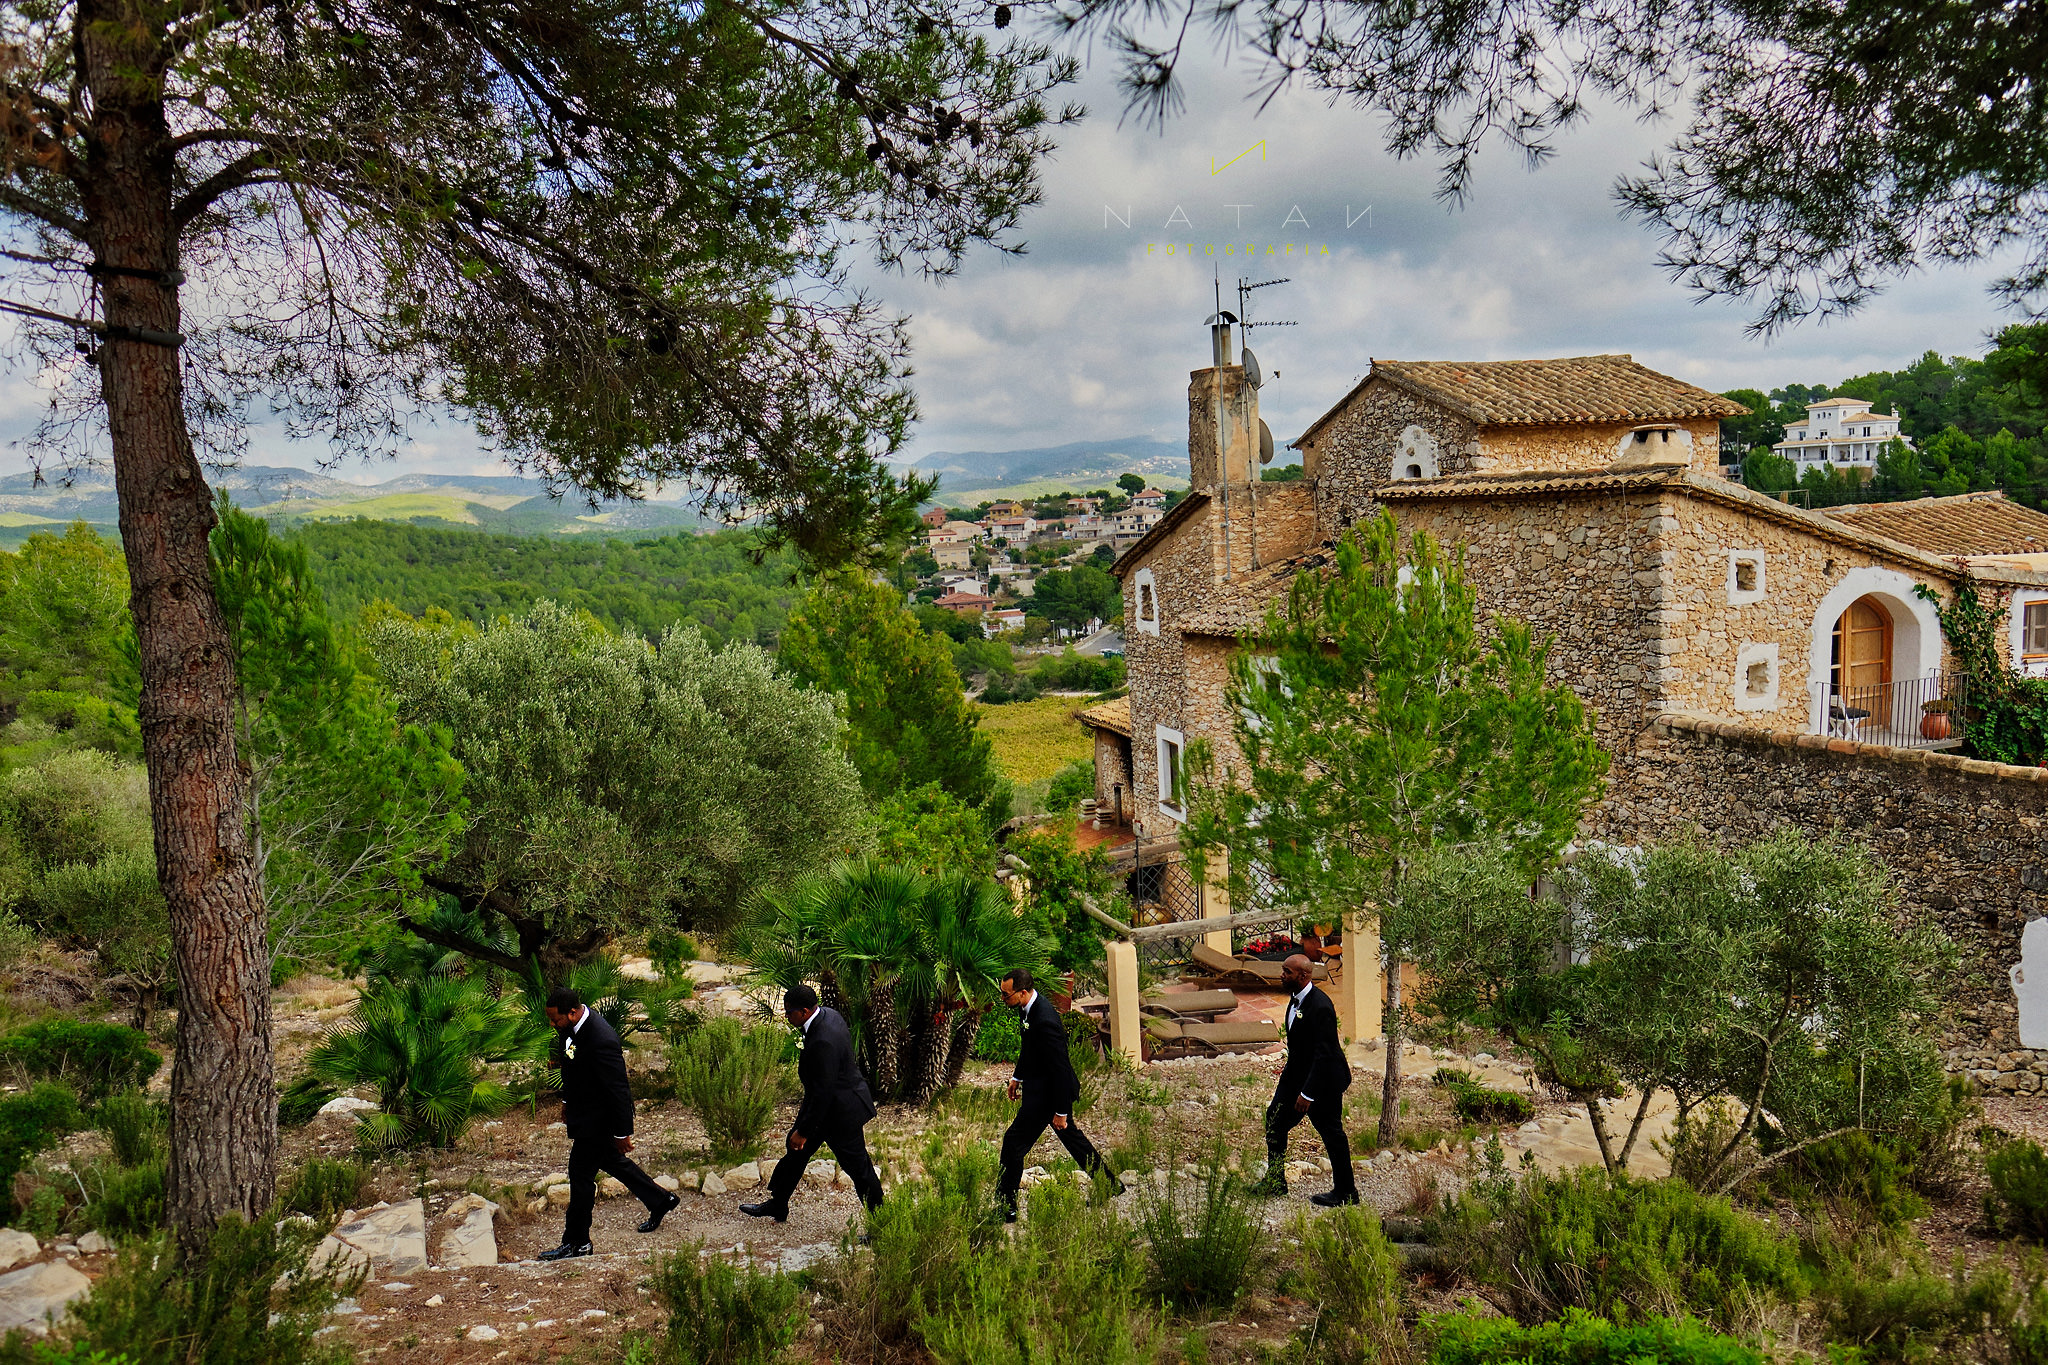 Groom and best men coming to the ceremony, in Almiral de la Font, Sitges